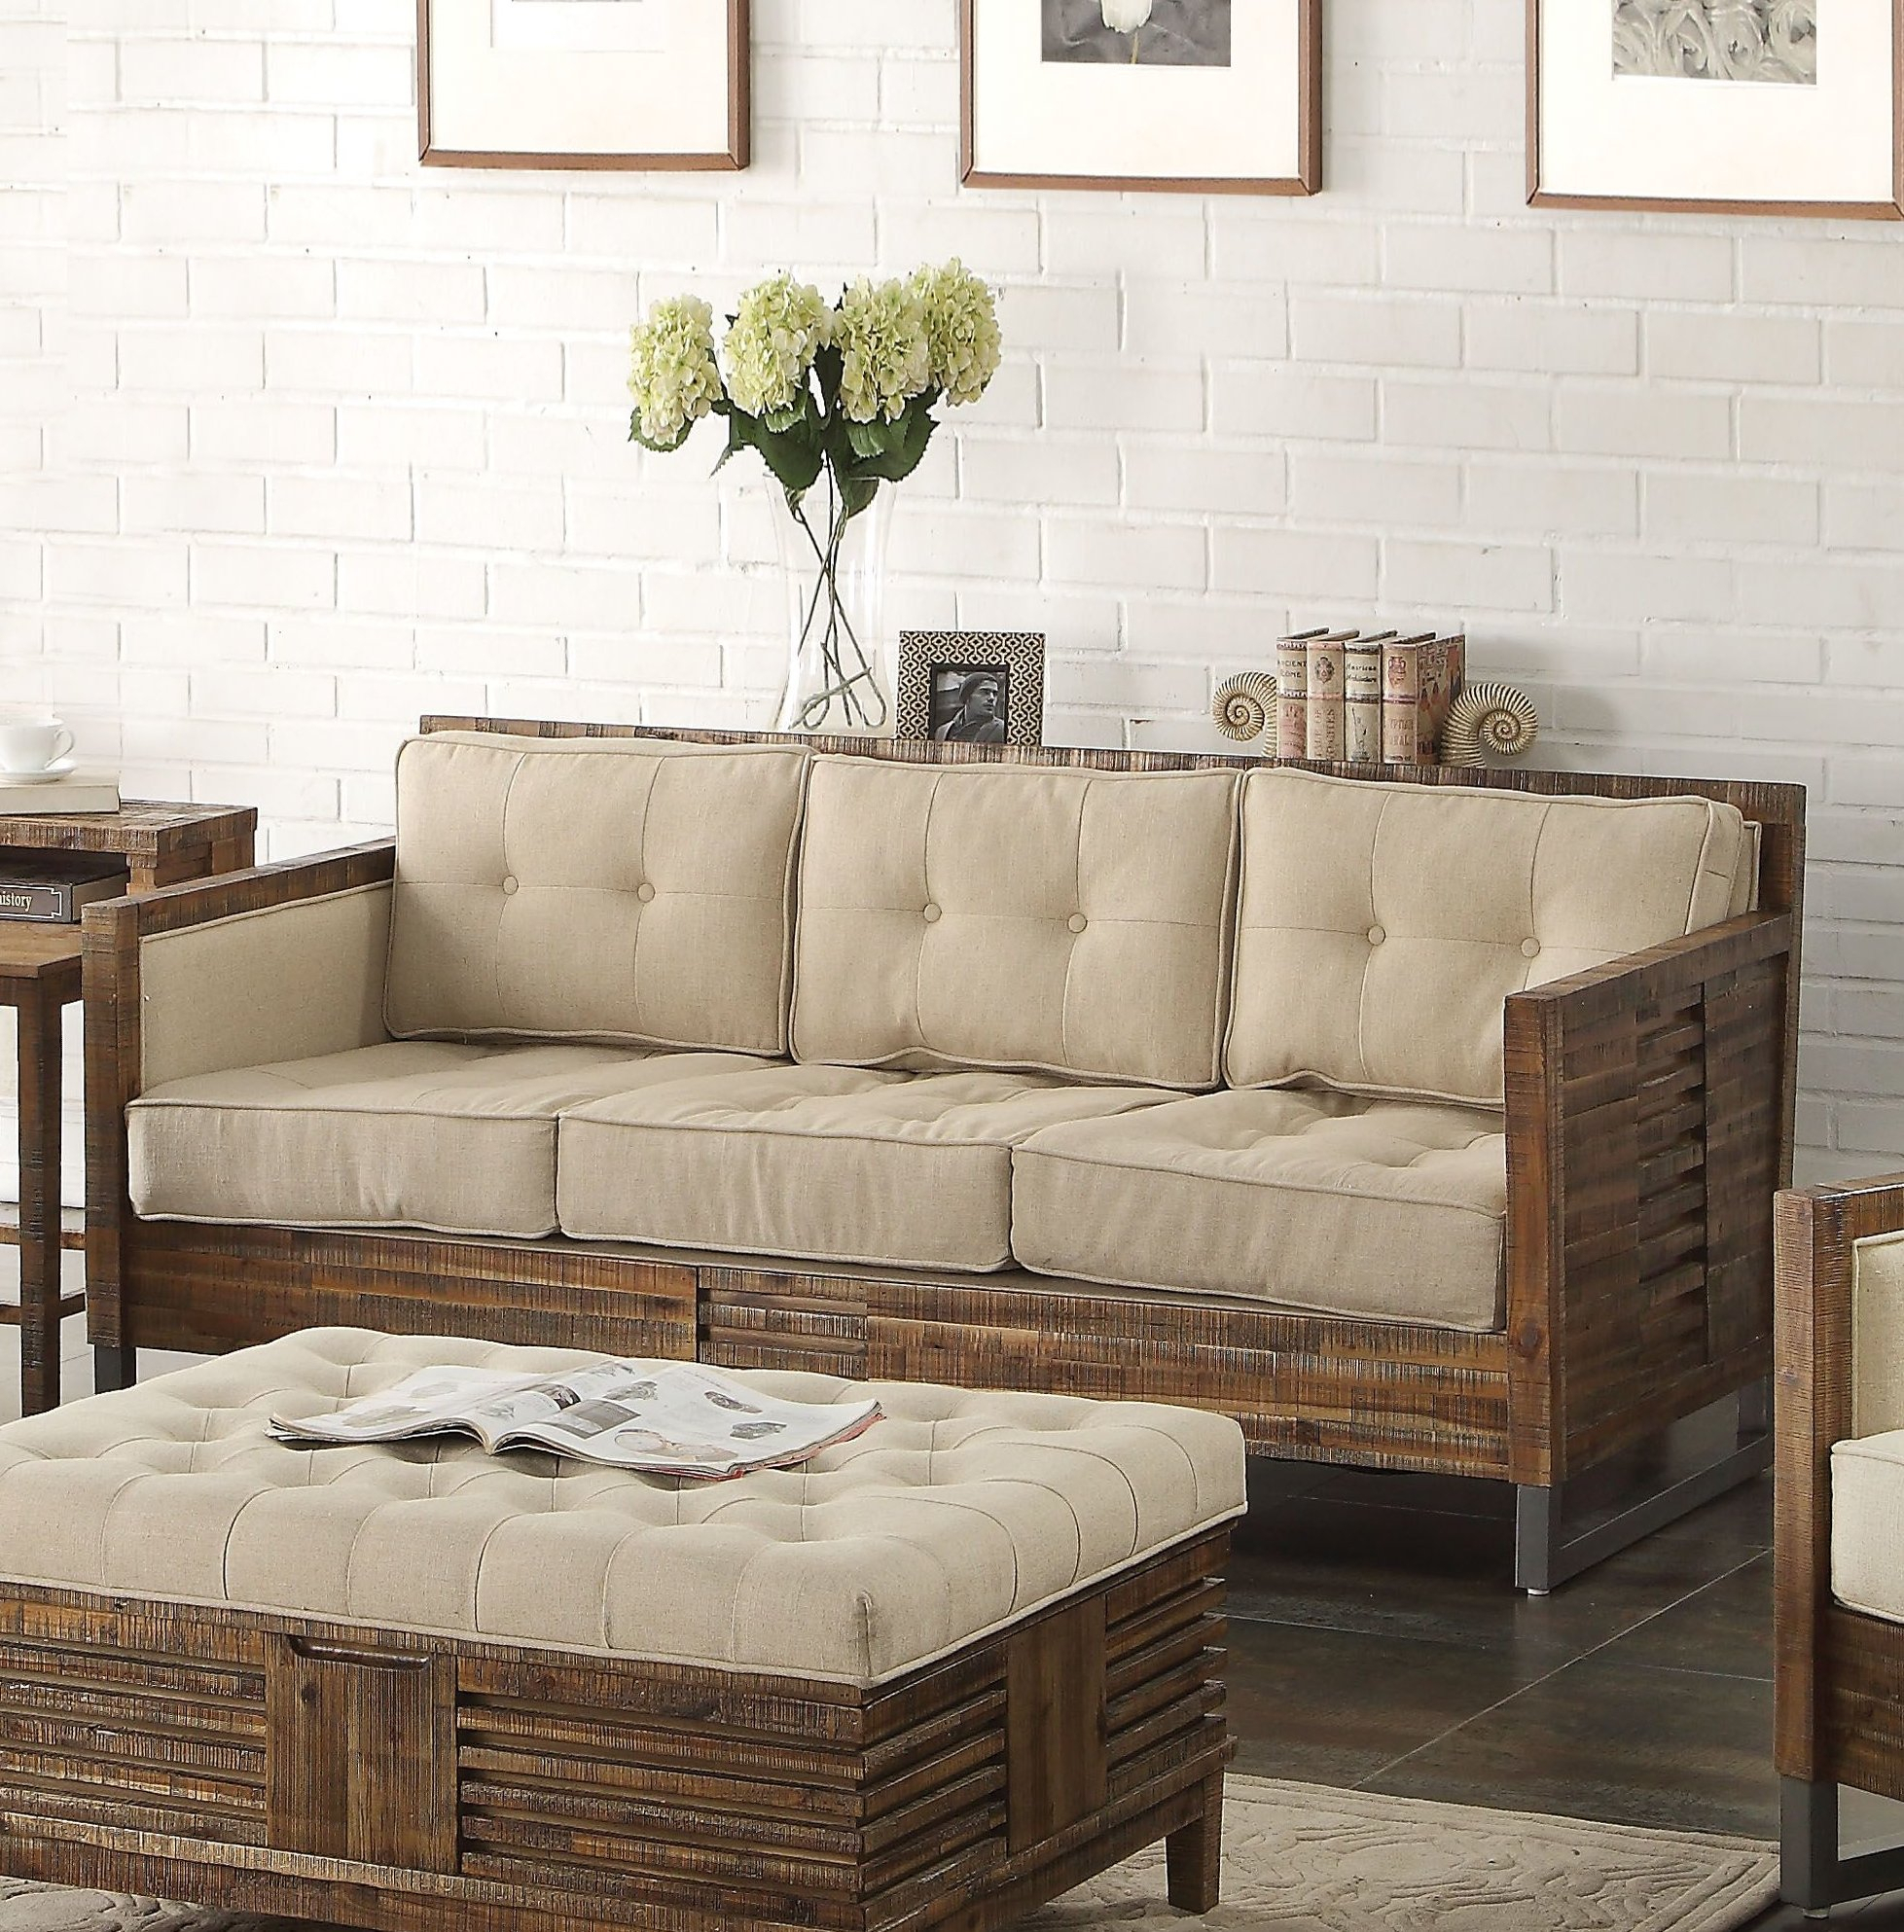 Foundry Select Rory Sofa | Wayfair With Regard To Rory Sofa Chairs (Image 7 of 25)